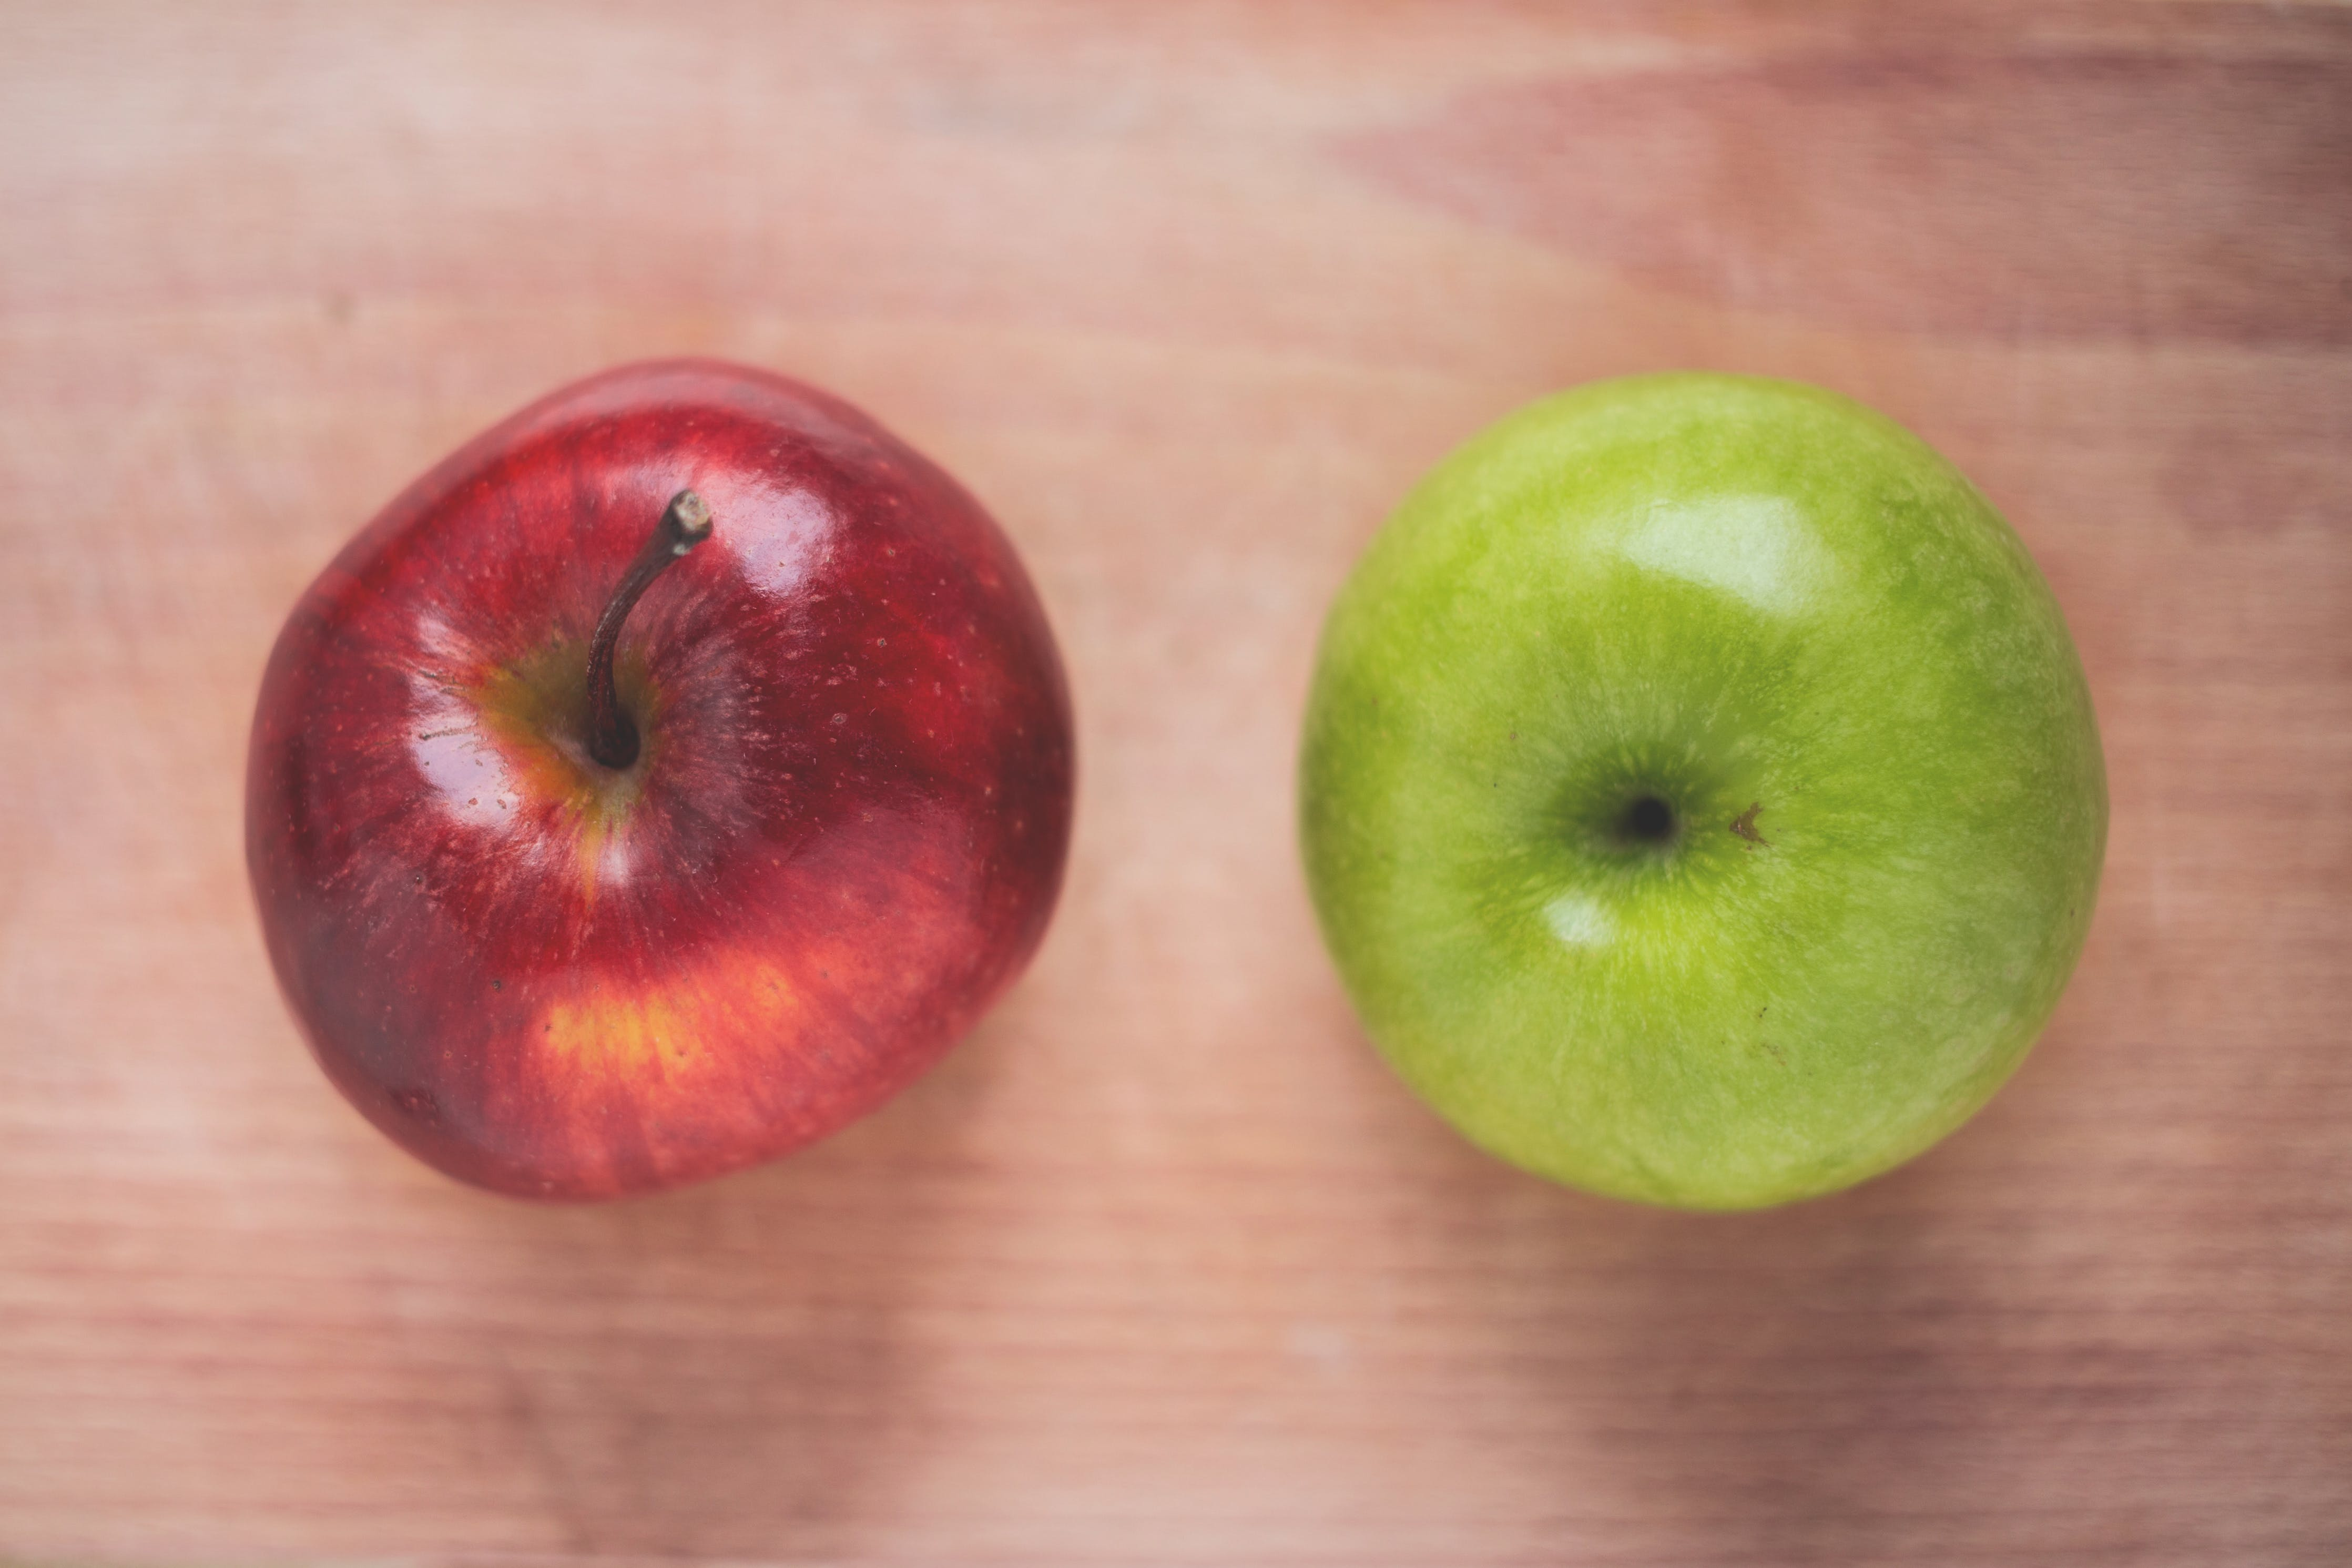 Two Red and Green Apple Fruits on Brown Surface